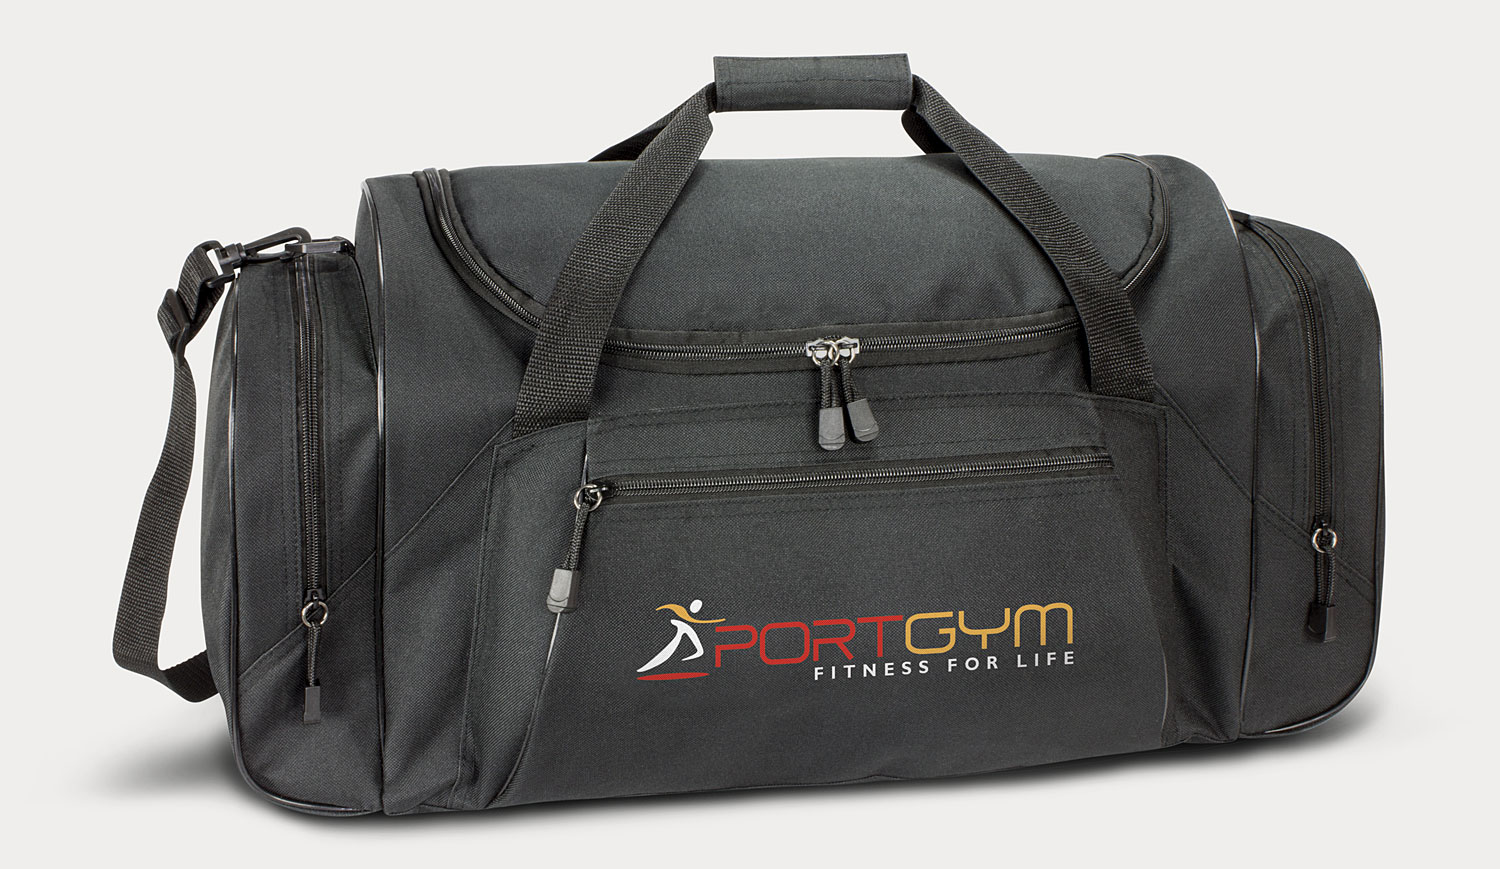 463074e8cec5 Champion Duffle Bag